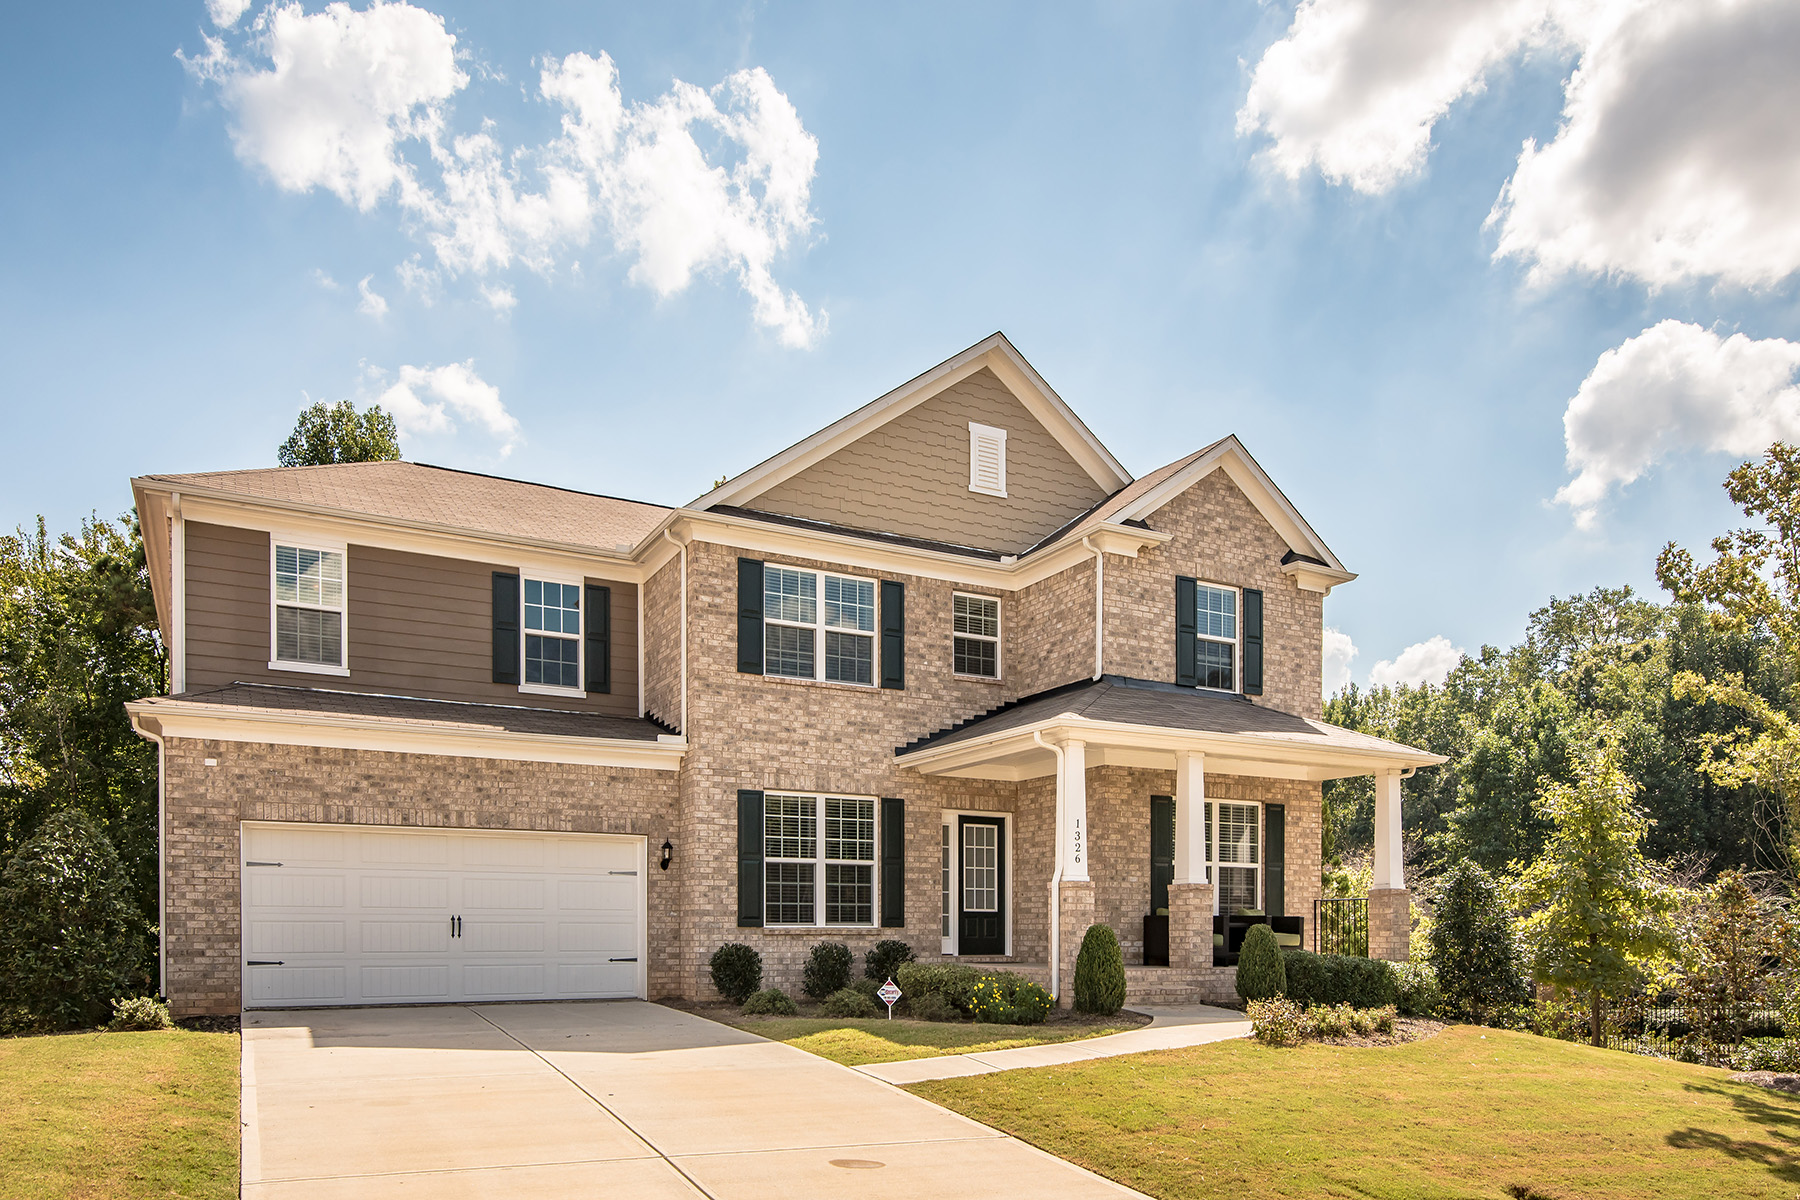 Single Family Home for Sale at Like New Former Model Home In Sought After Peachtree Ridge School Cluster 1326 Calistoga Way Suwanee, Georgia 30043 United States